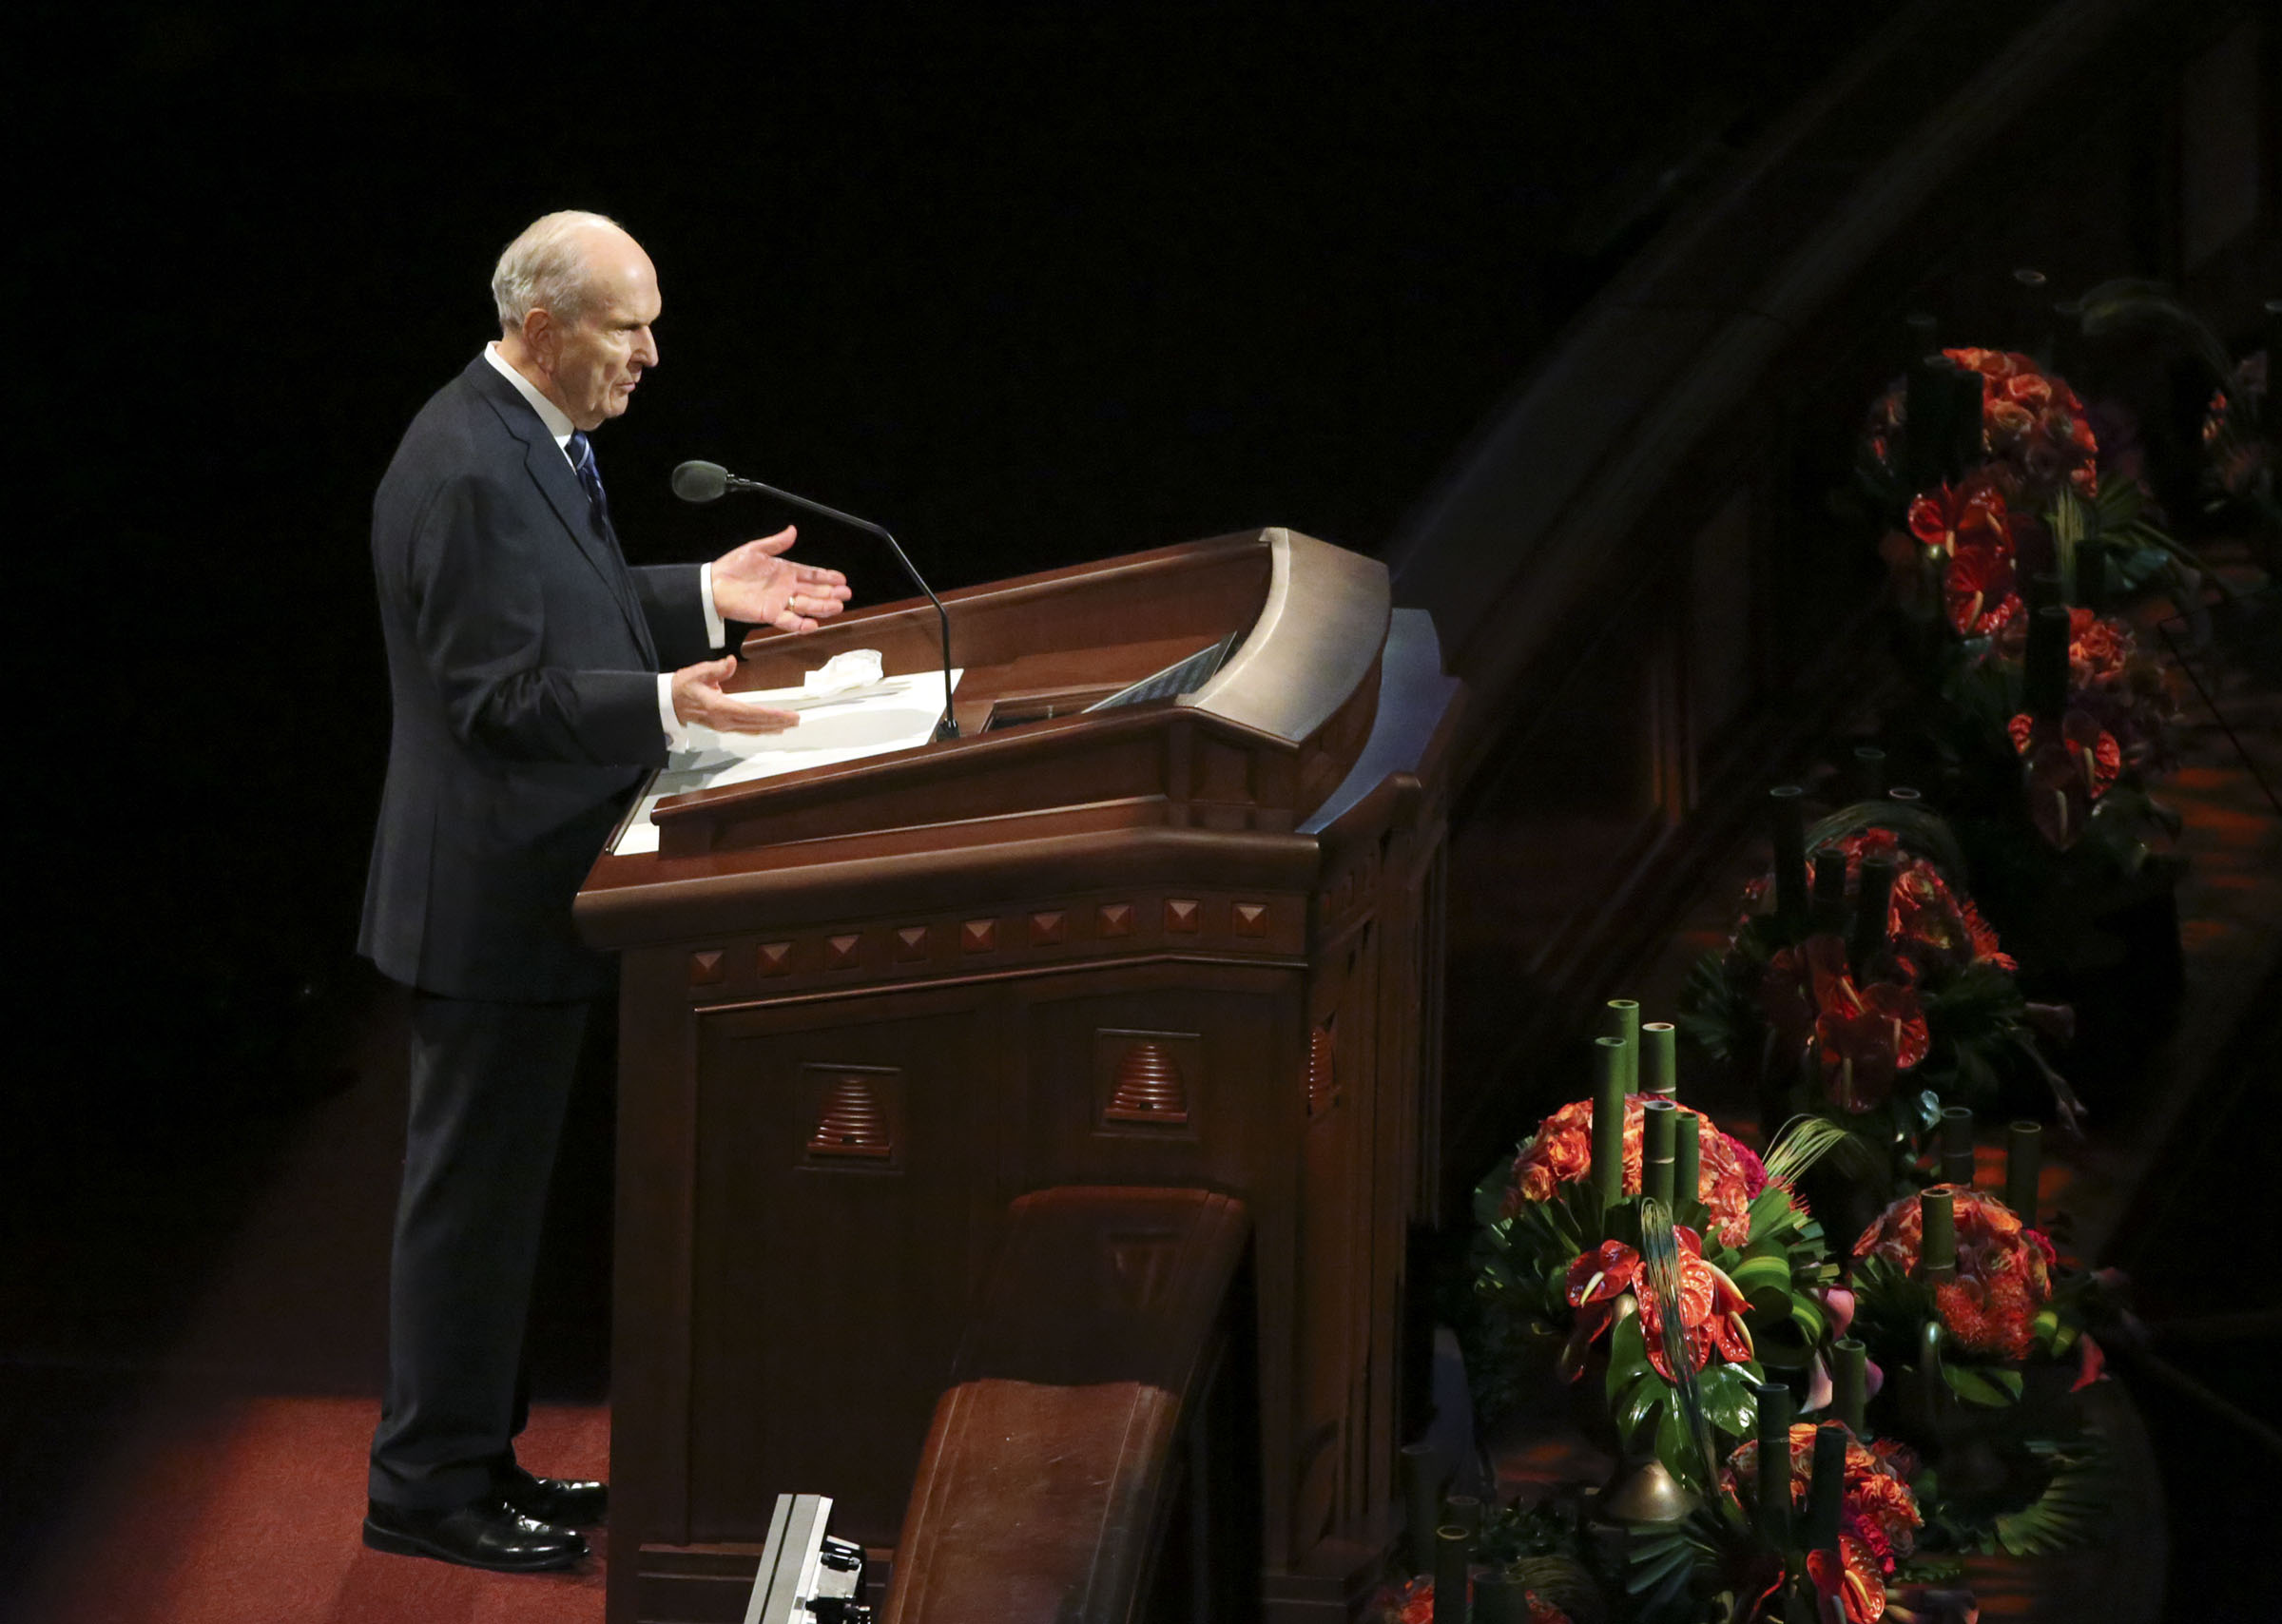 President Russell M. Nelson speaks about the name of the Church during the Sunday morning session of the 188th Semiannual General Conference in the Conference Center in downtown Salt Lake City on Sunday, Oct. 7, 2018.